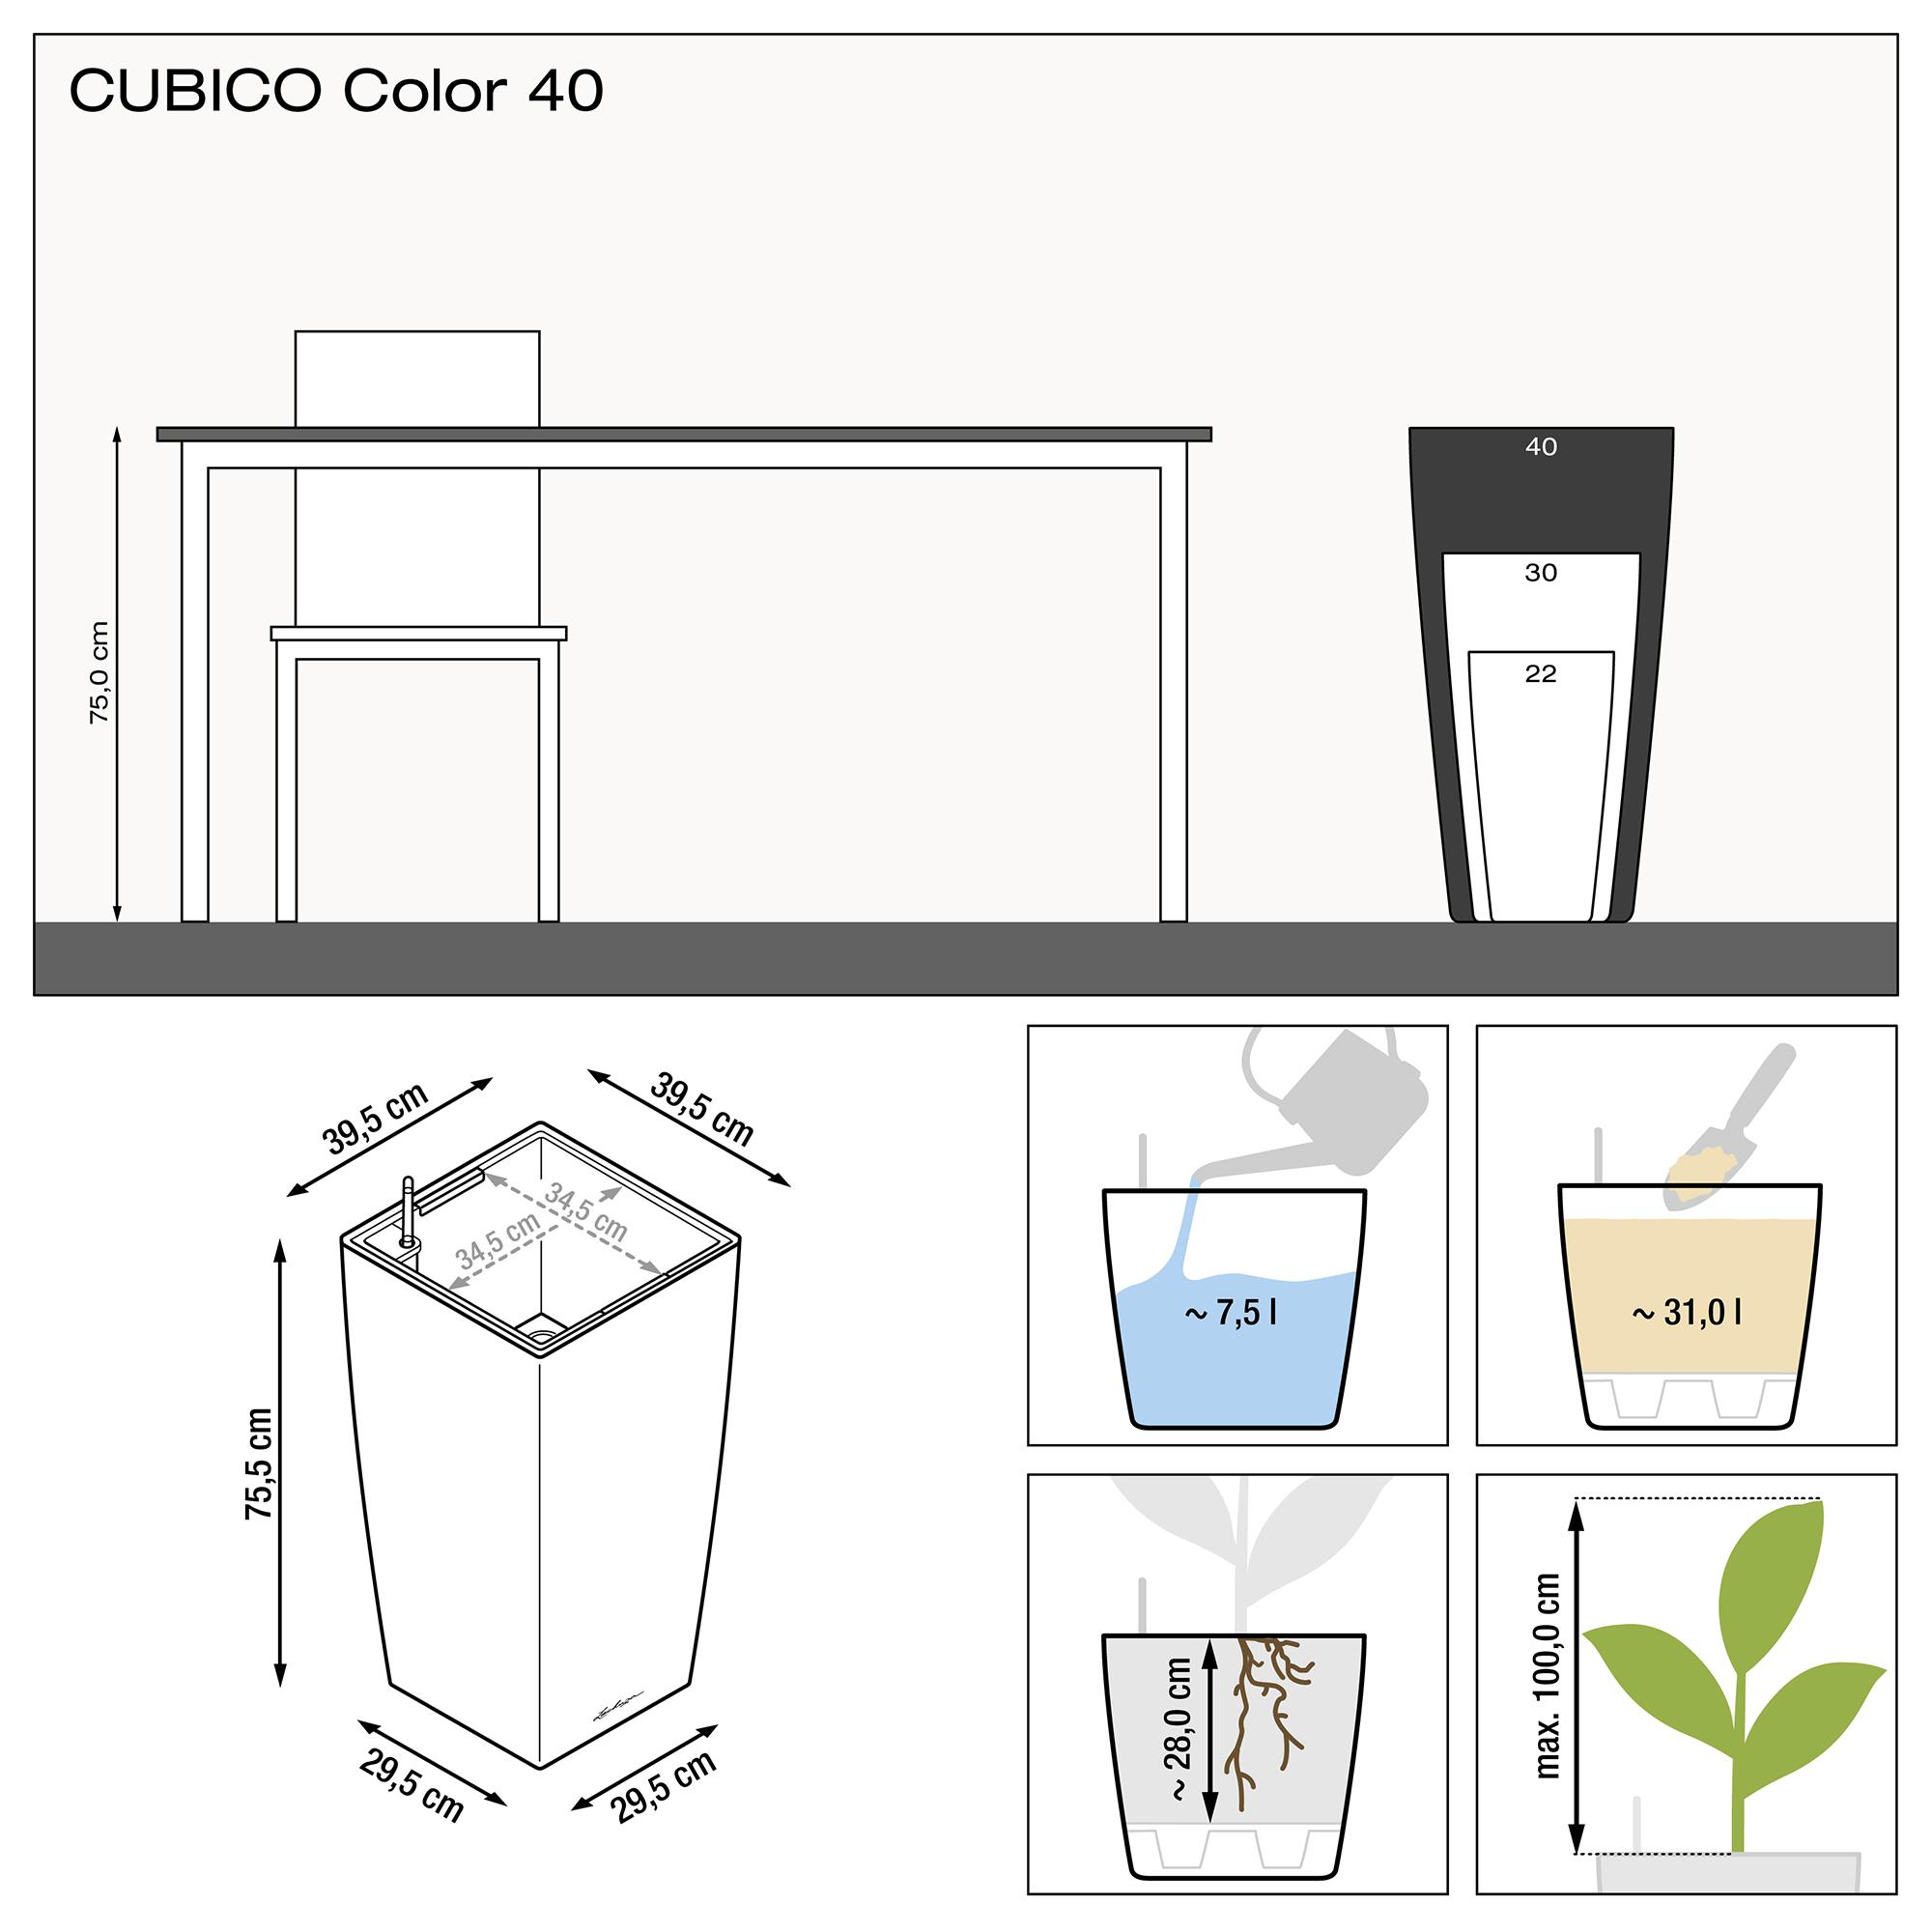 le_cubico-color40_product_addi_nz